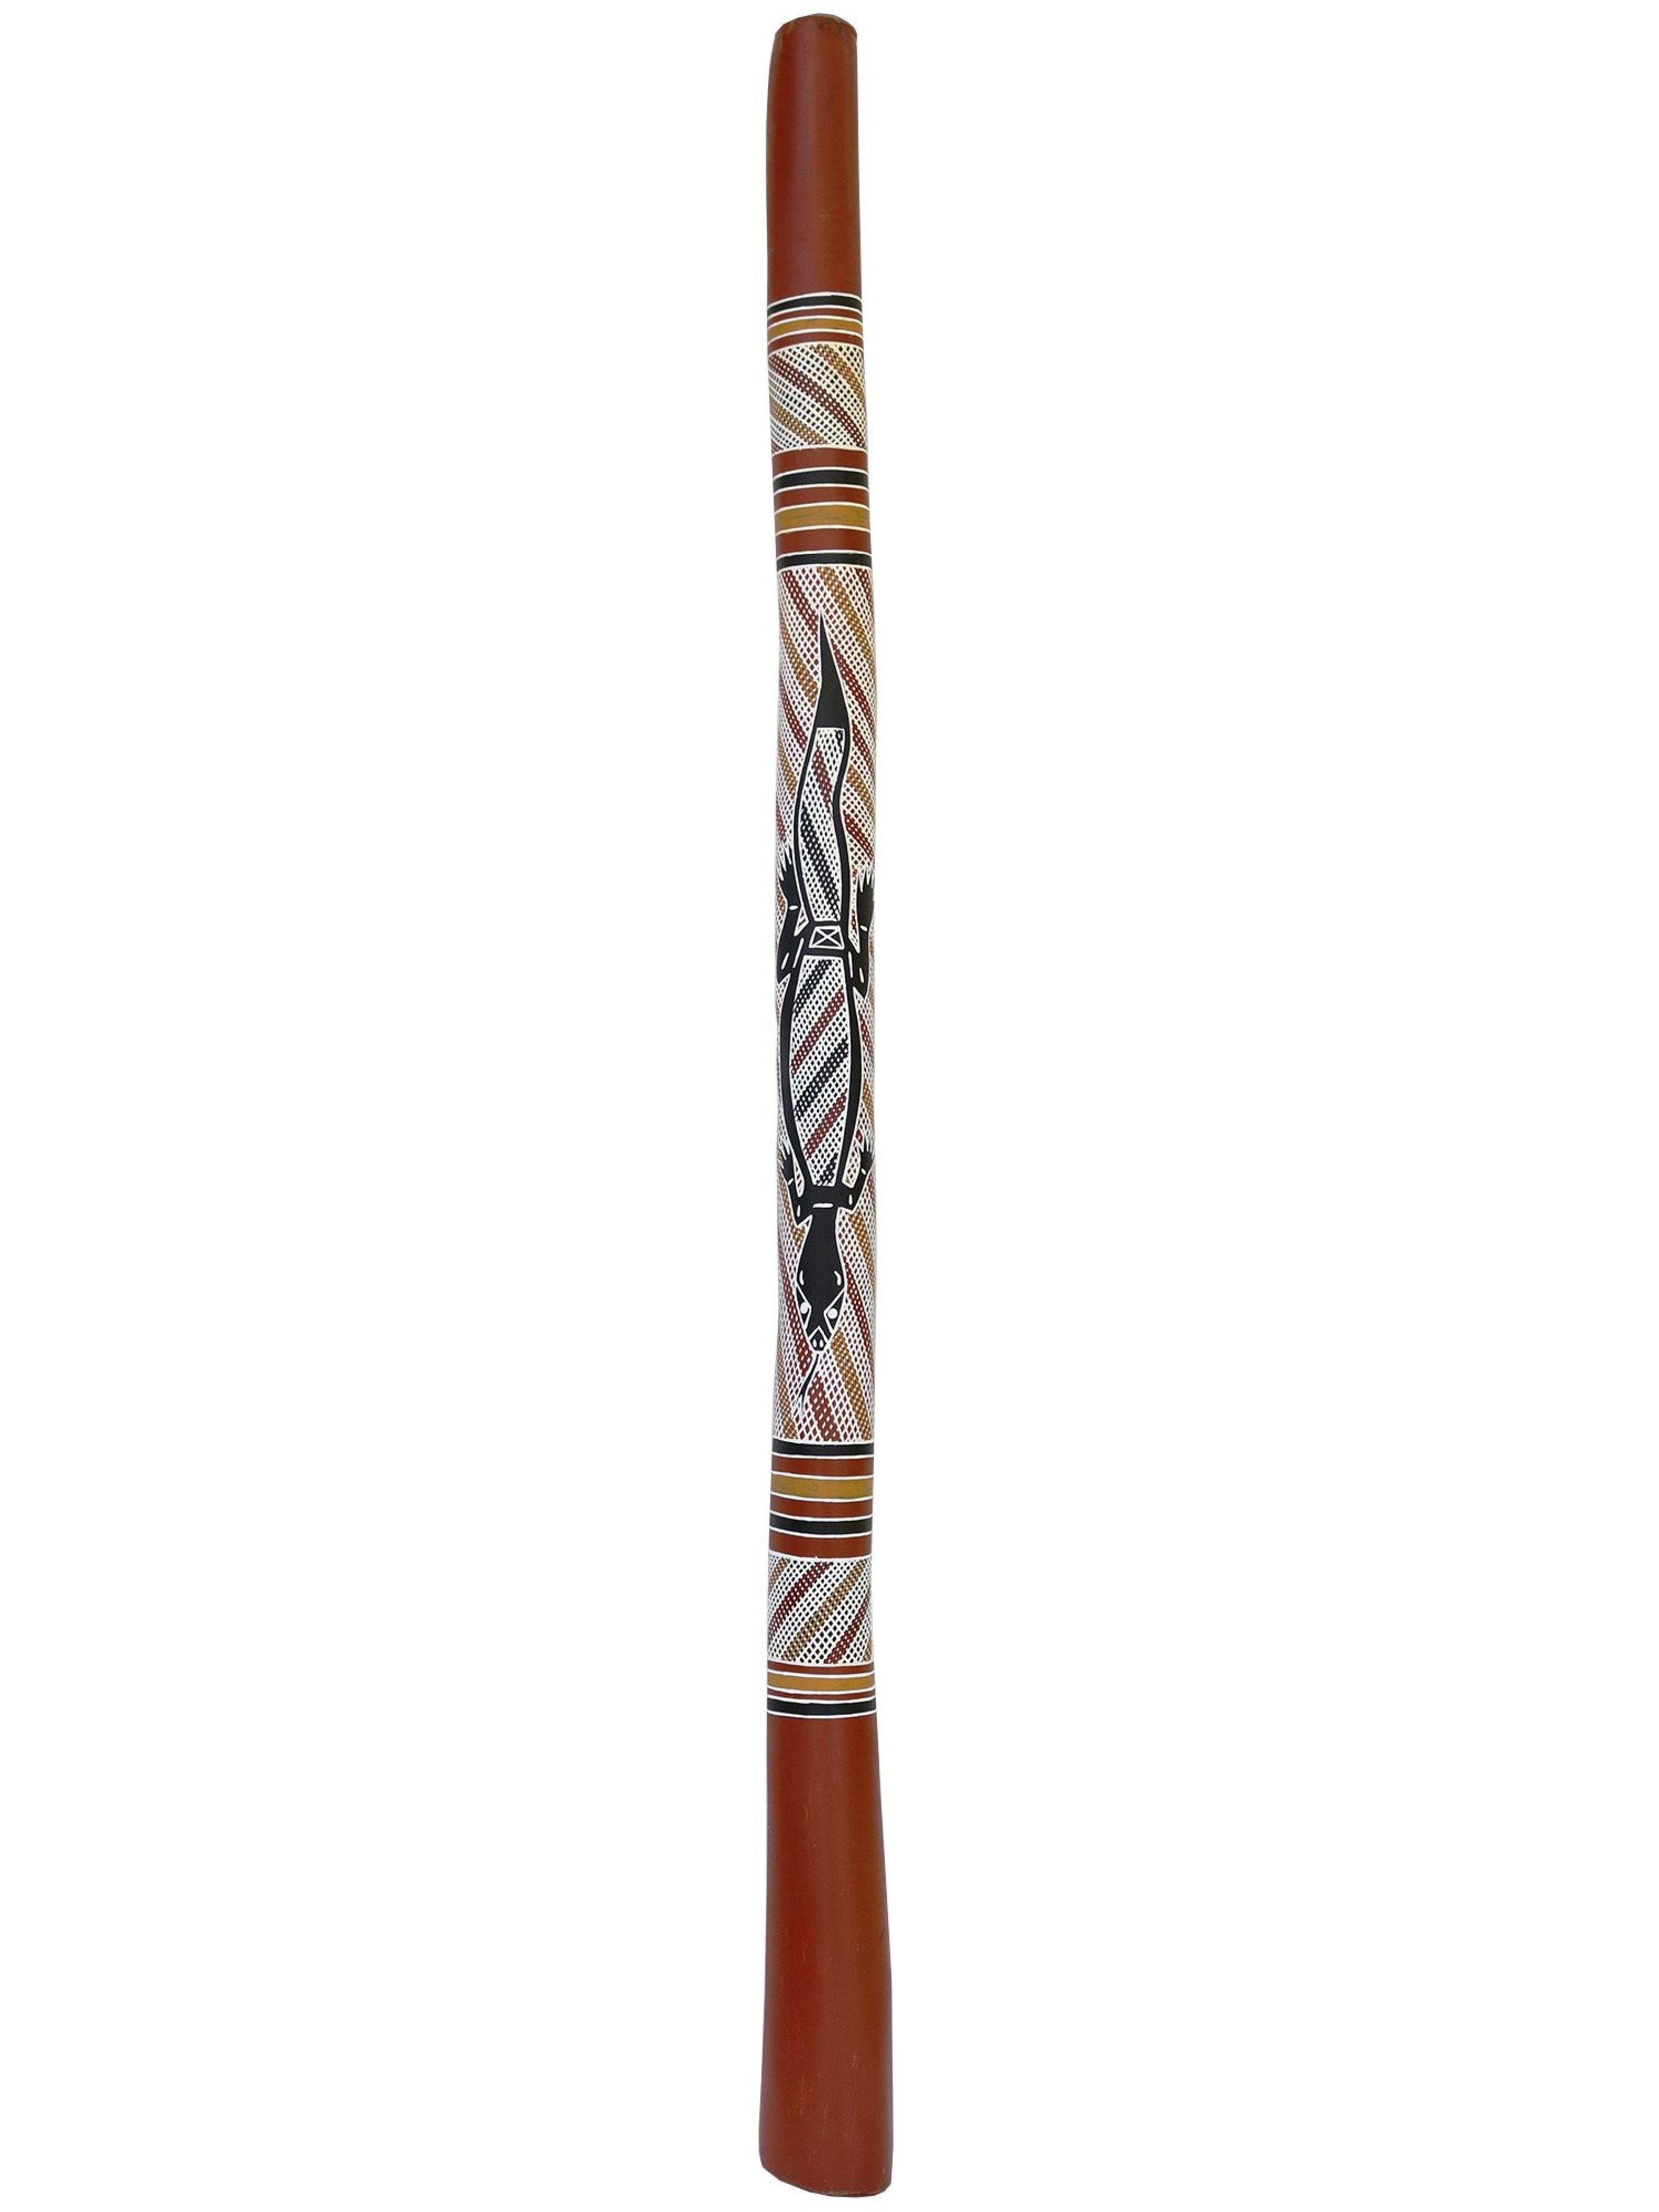 Cultural Experience and Aboriginal Art